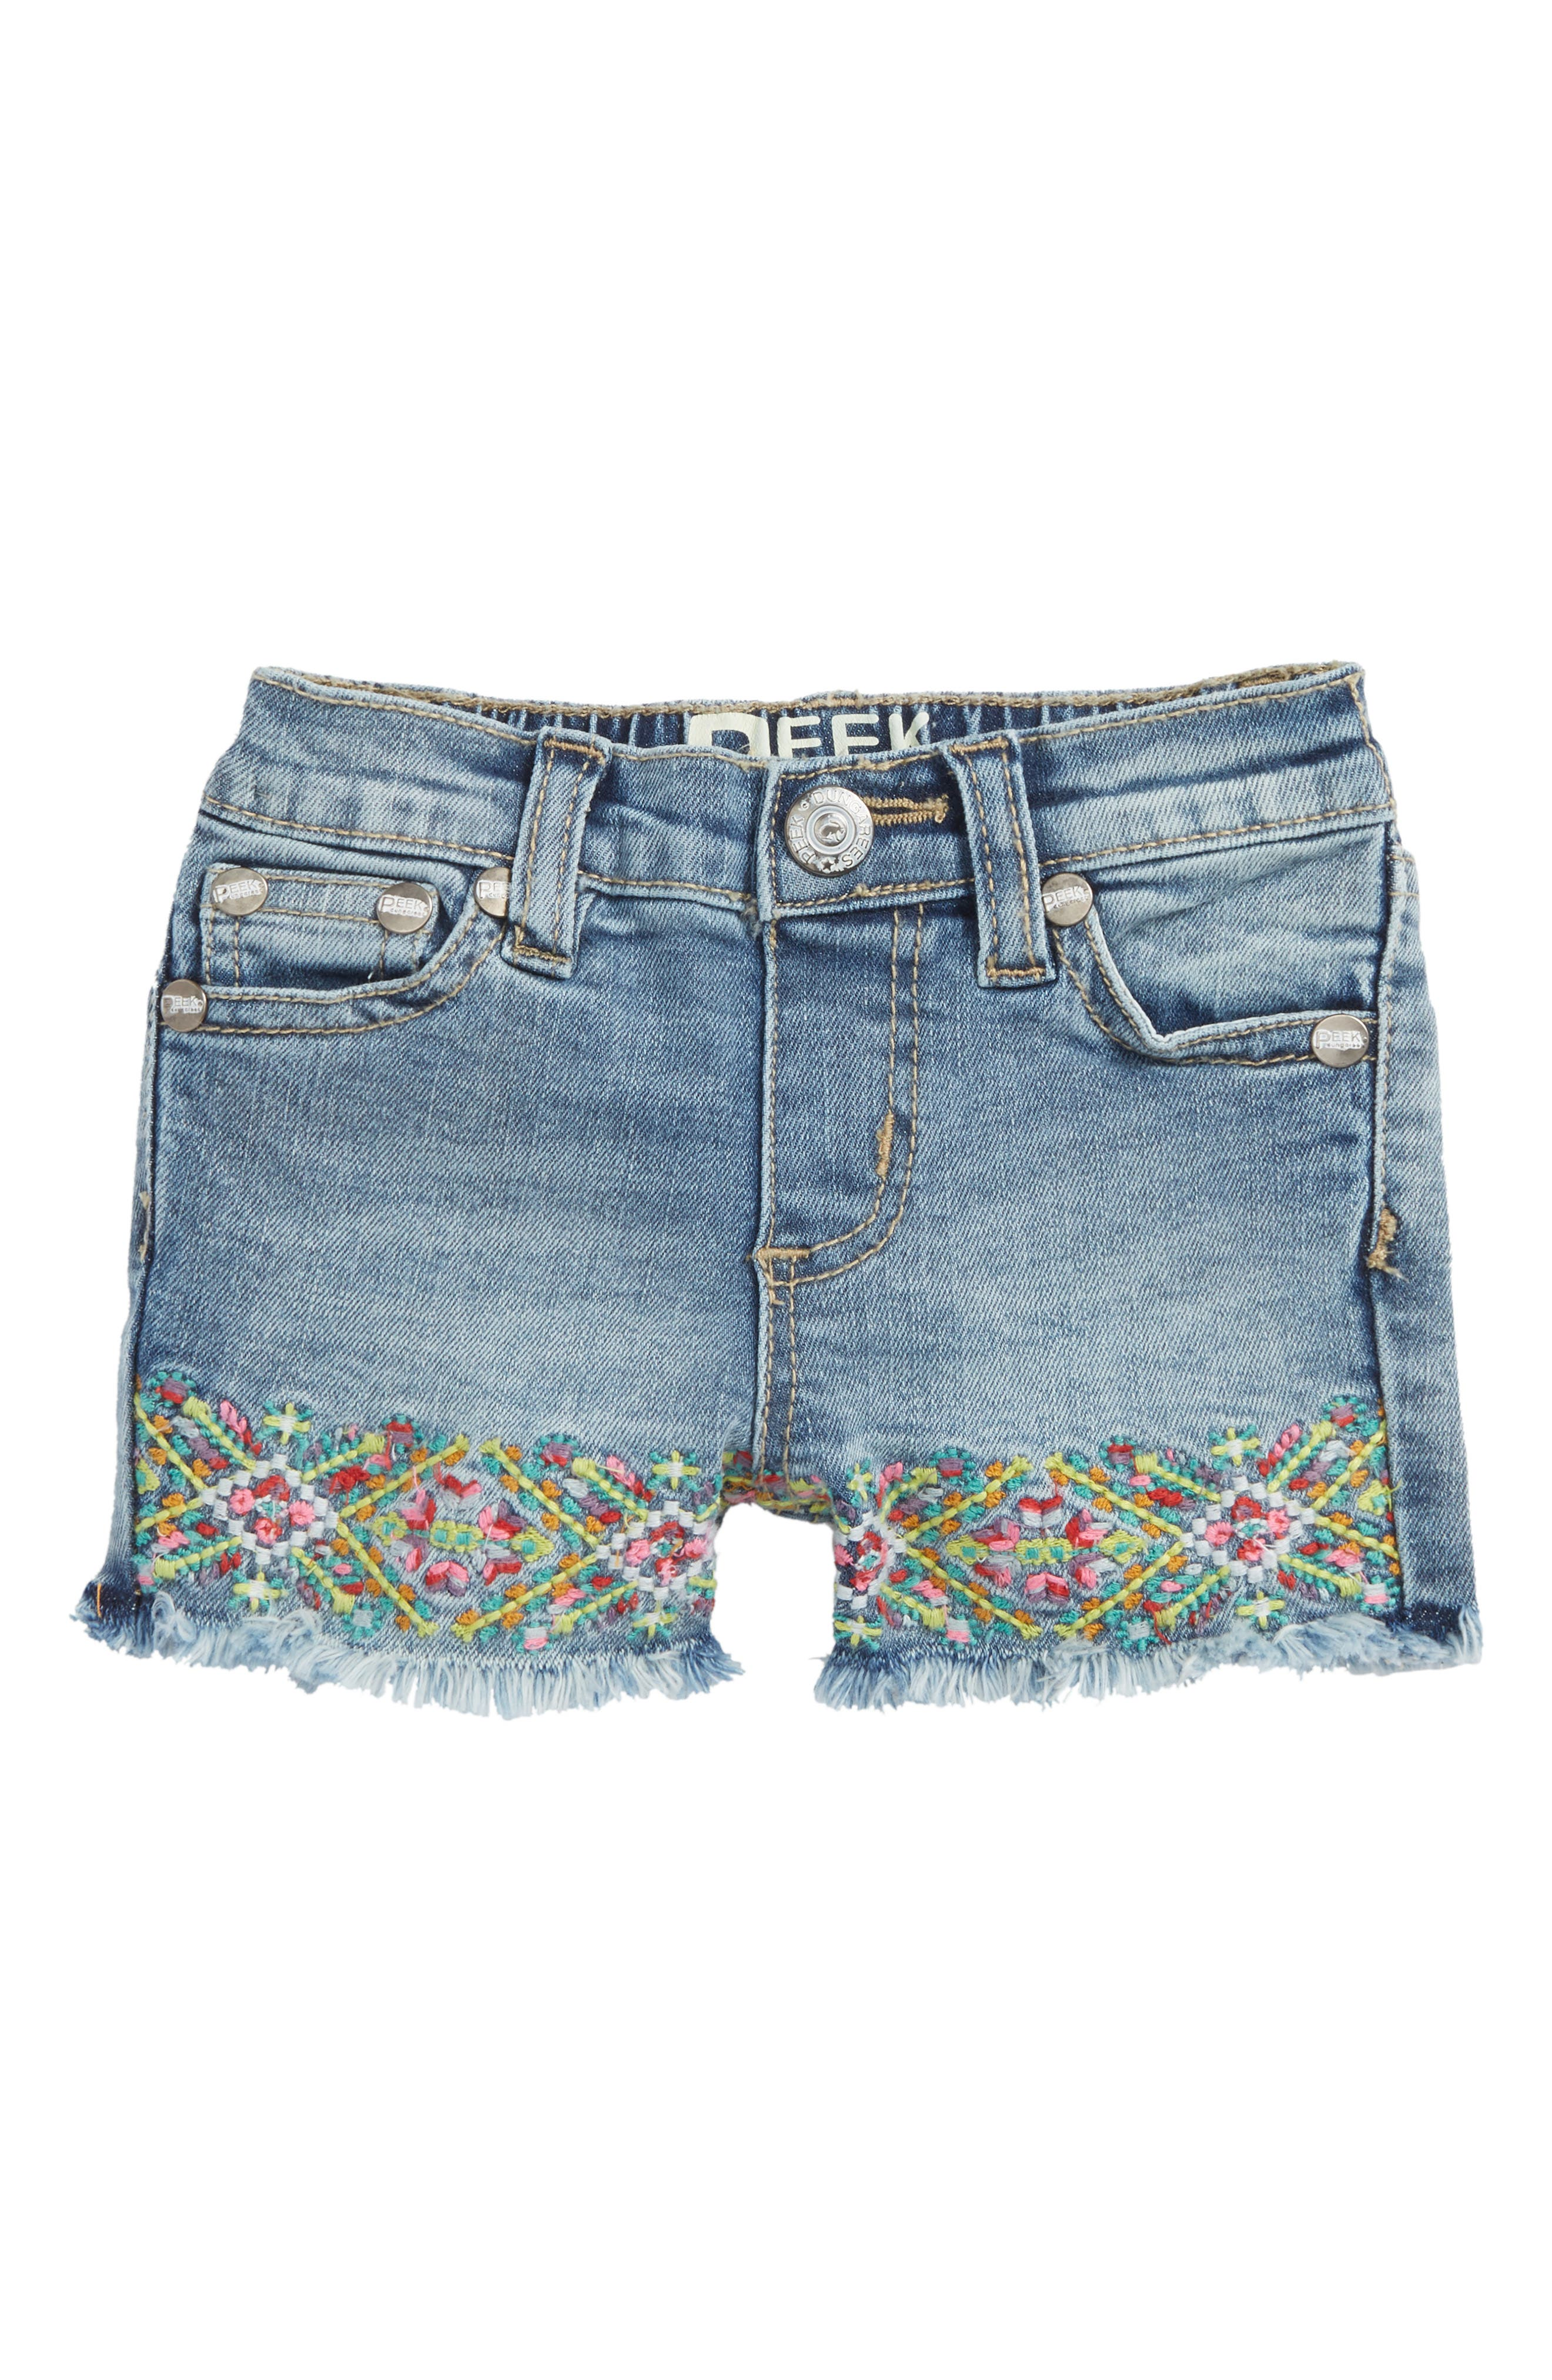 Embroidered Frayed Hem Denim Shorts,                             Main thumbnail 1, color,                             416